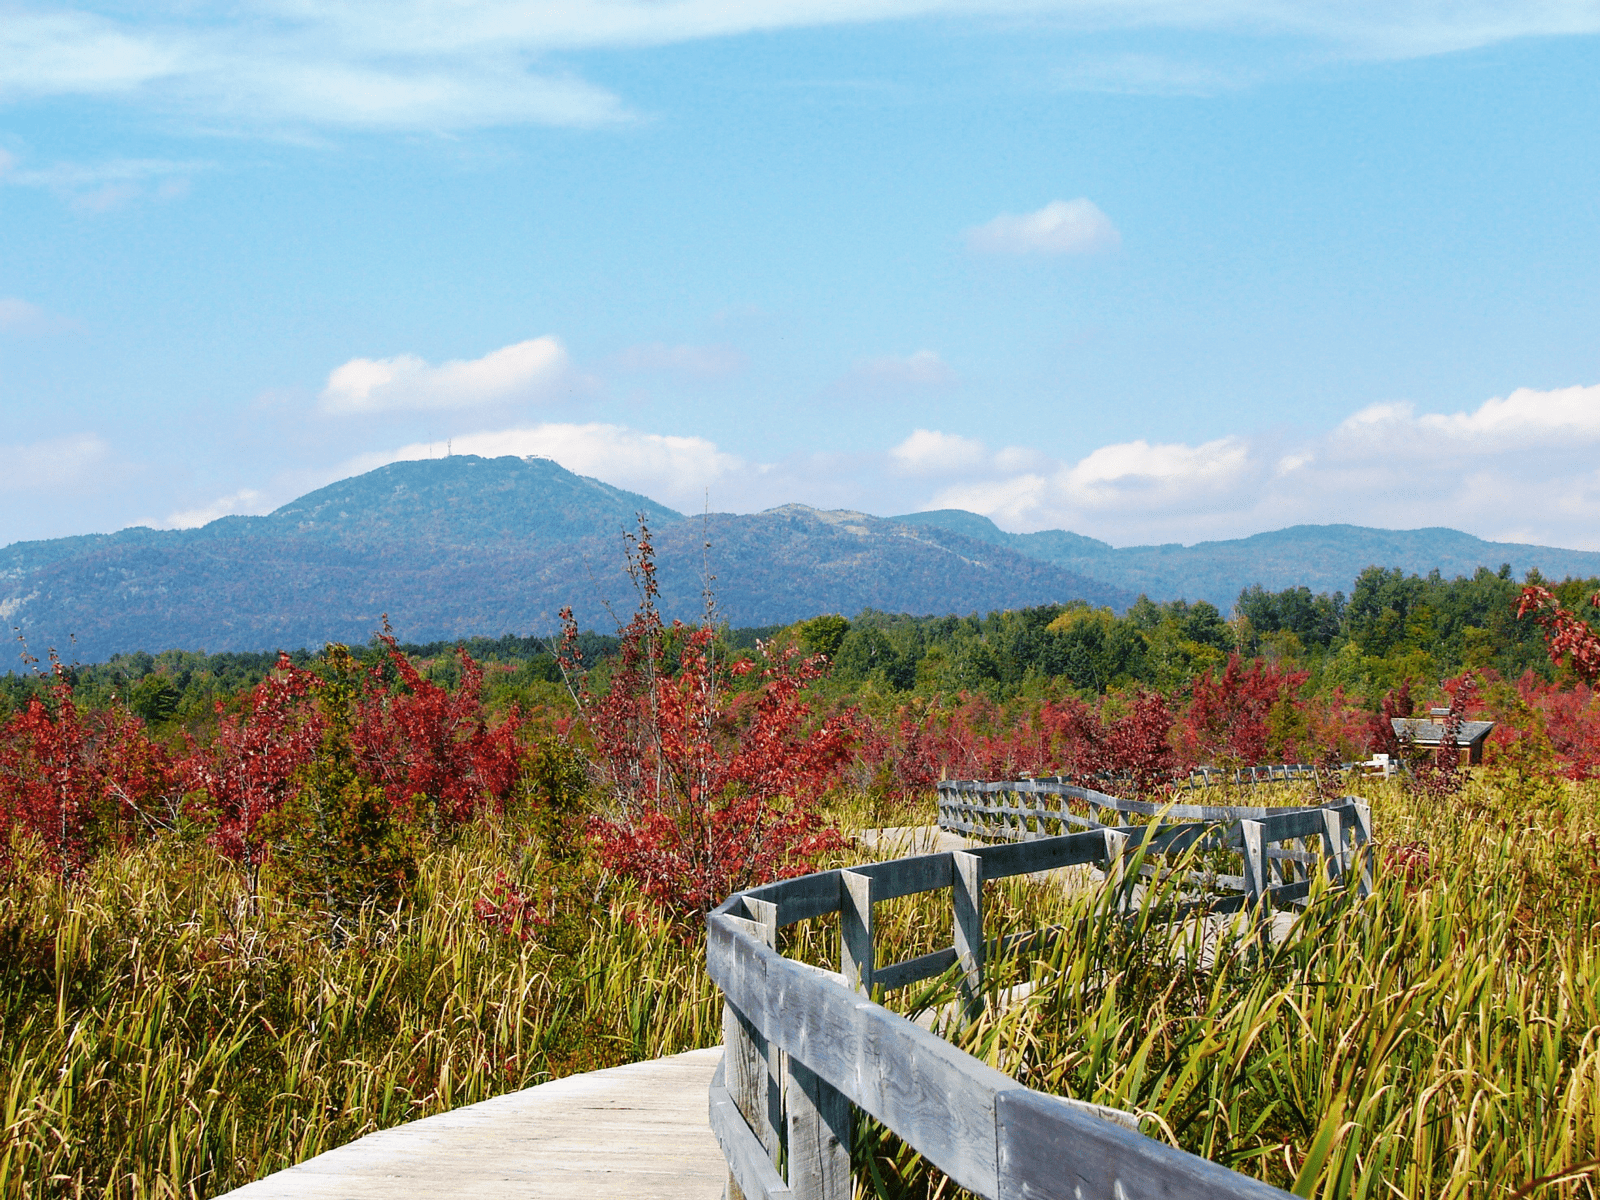 Wooden walkway through a green field with mountains in the background